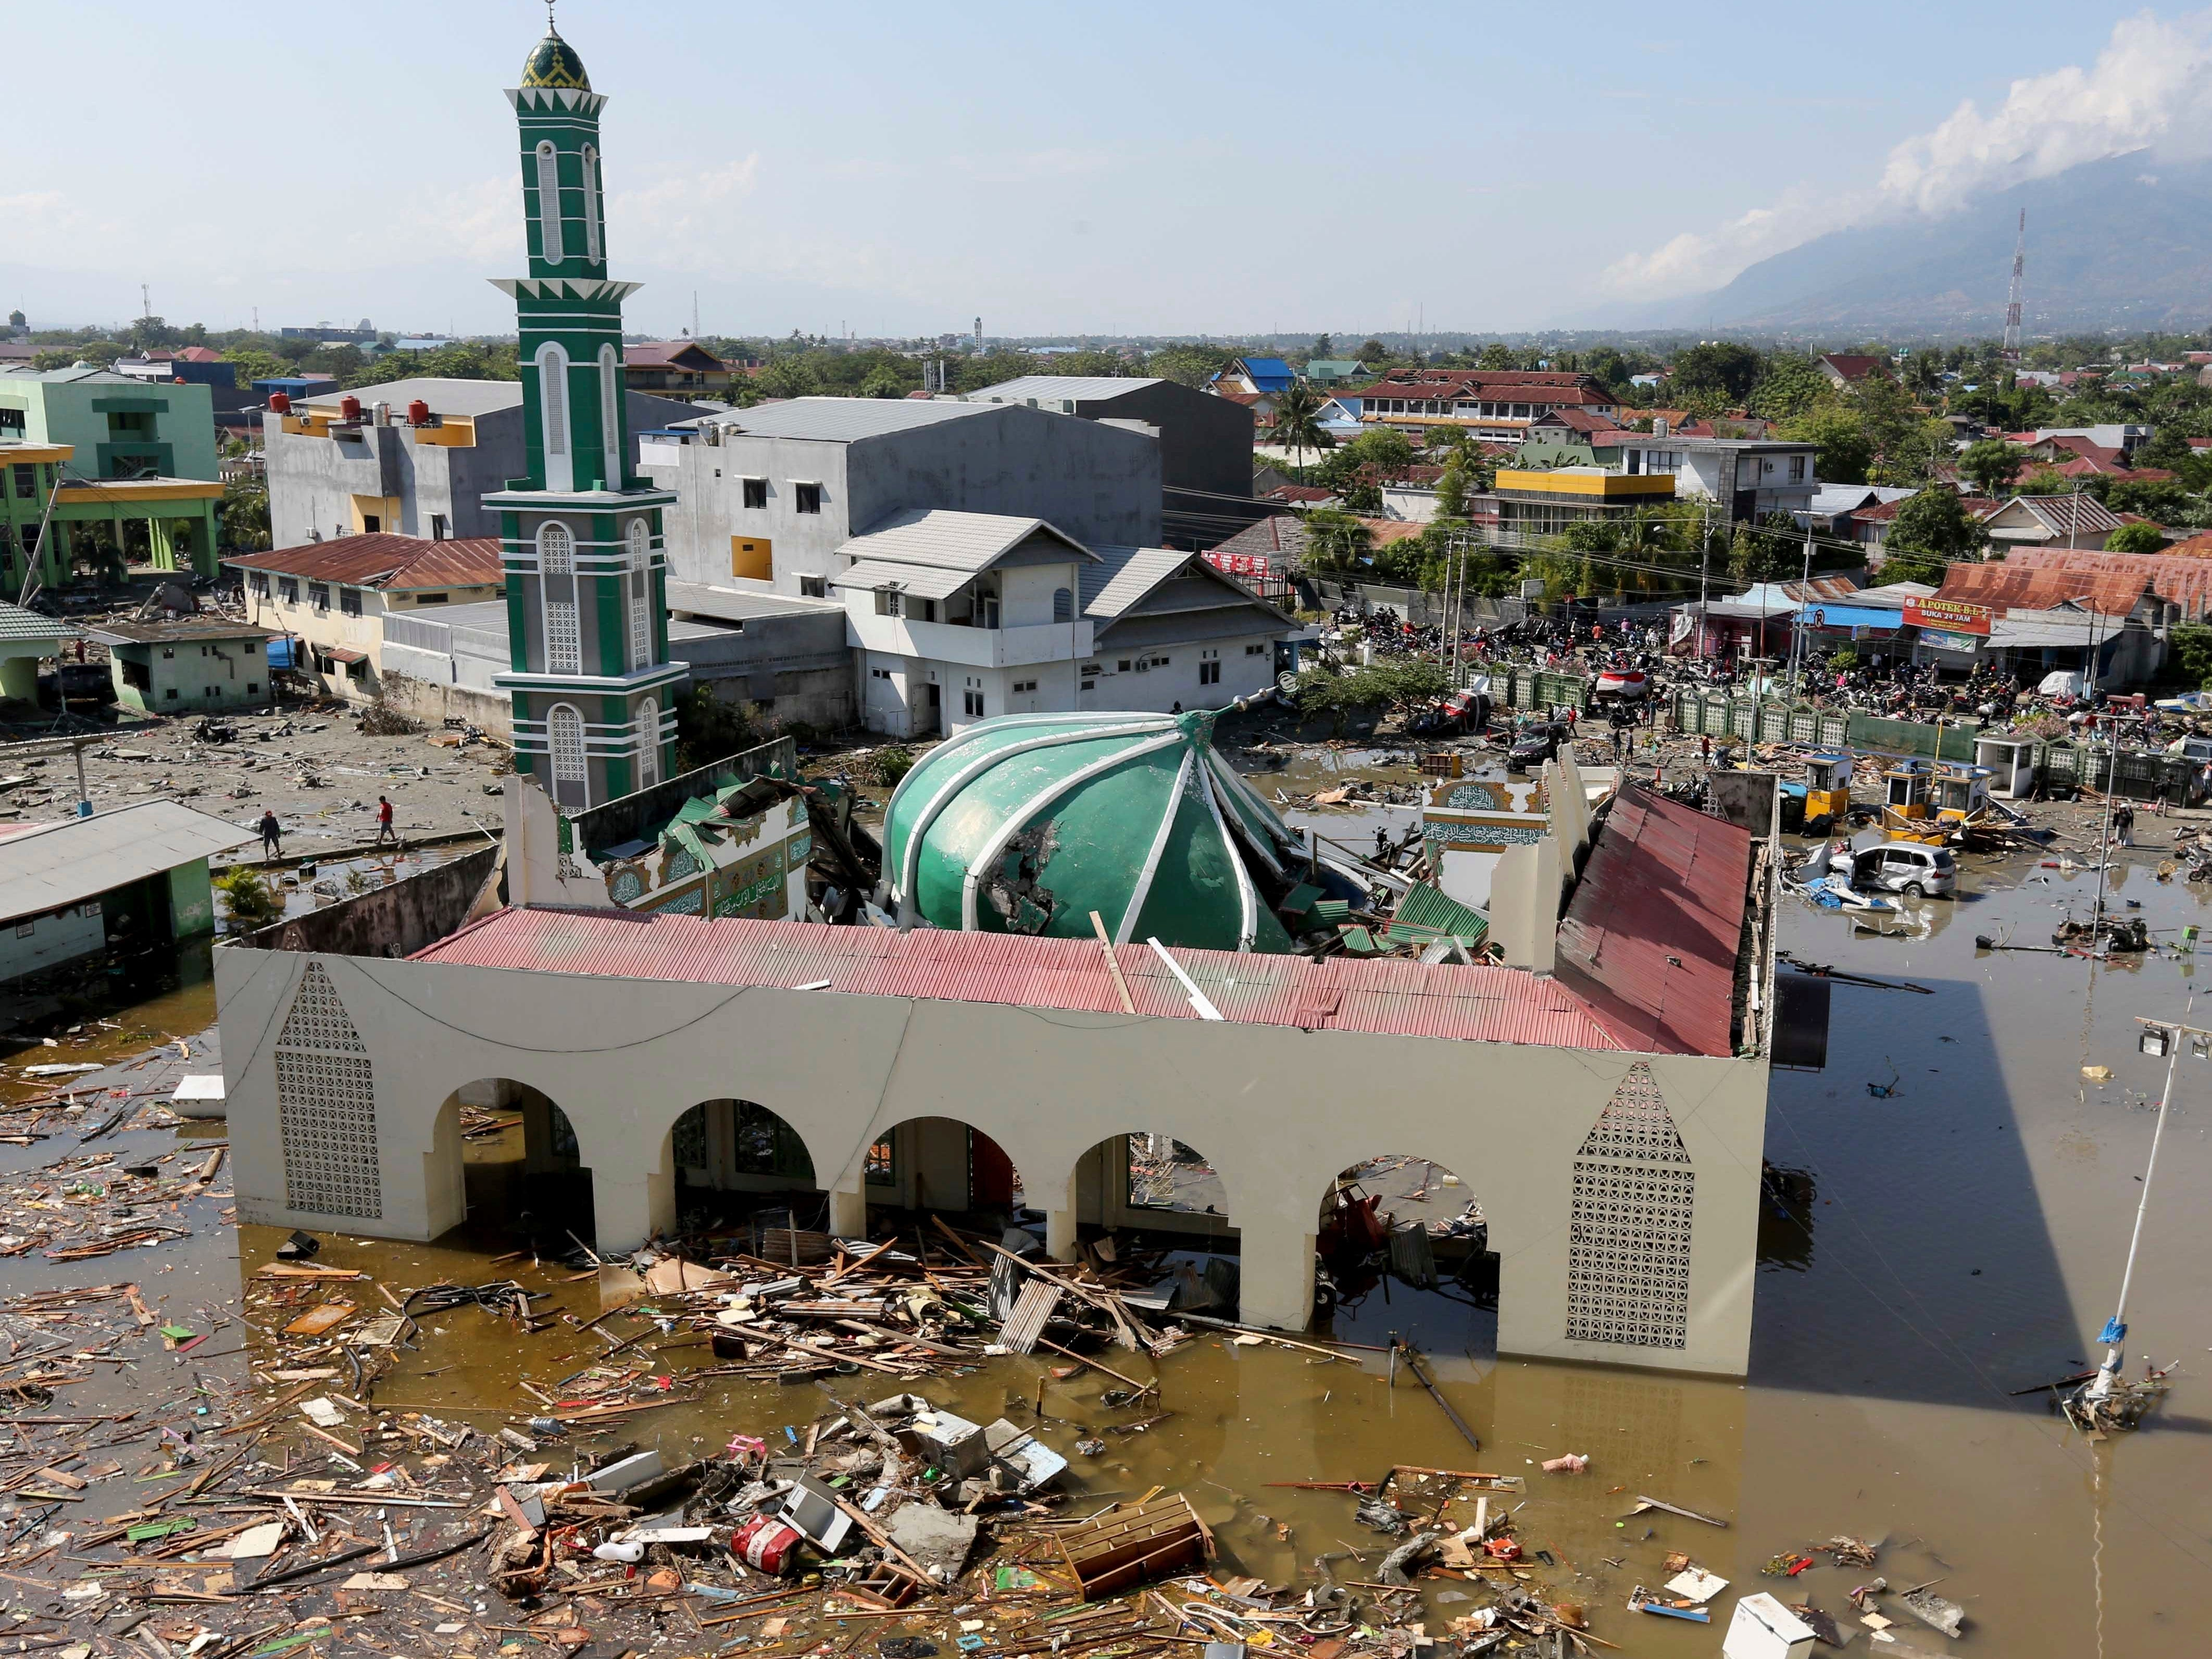 People survey the mosque damaged following earthquakes and tsunami in Palu, Central Sulawesi, Indonesia, Sunday, Sept. 30, 2018. A tsunami swept away buildings and killed hundreds on the Indonesian island of Sulawesi.